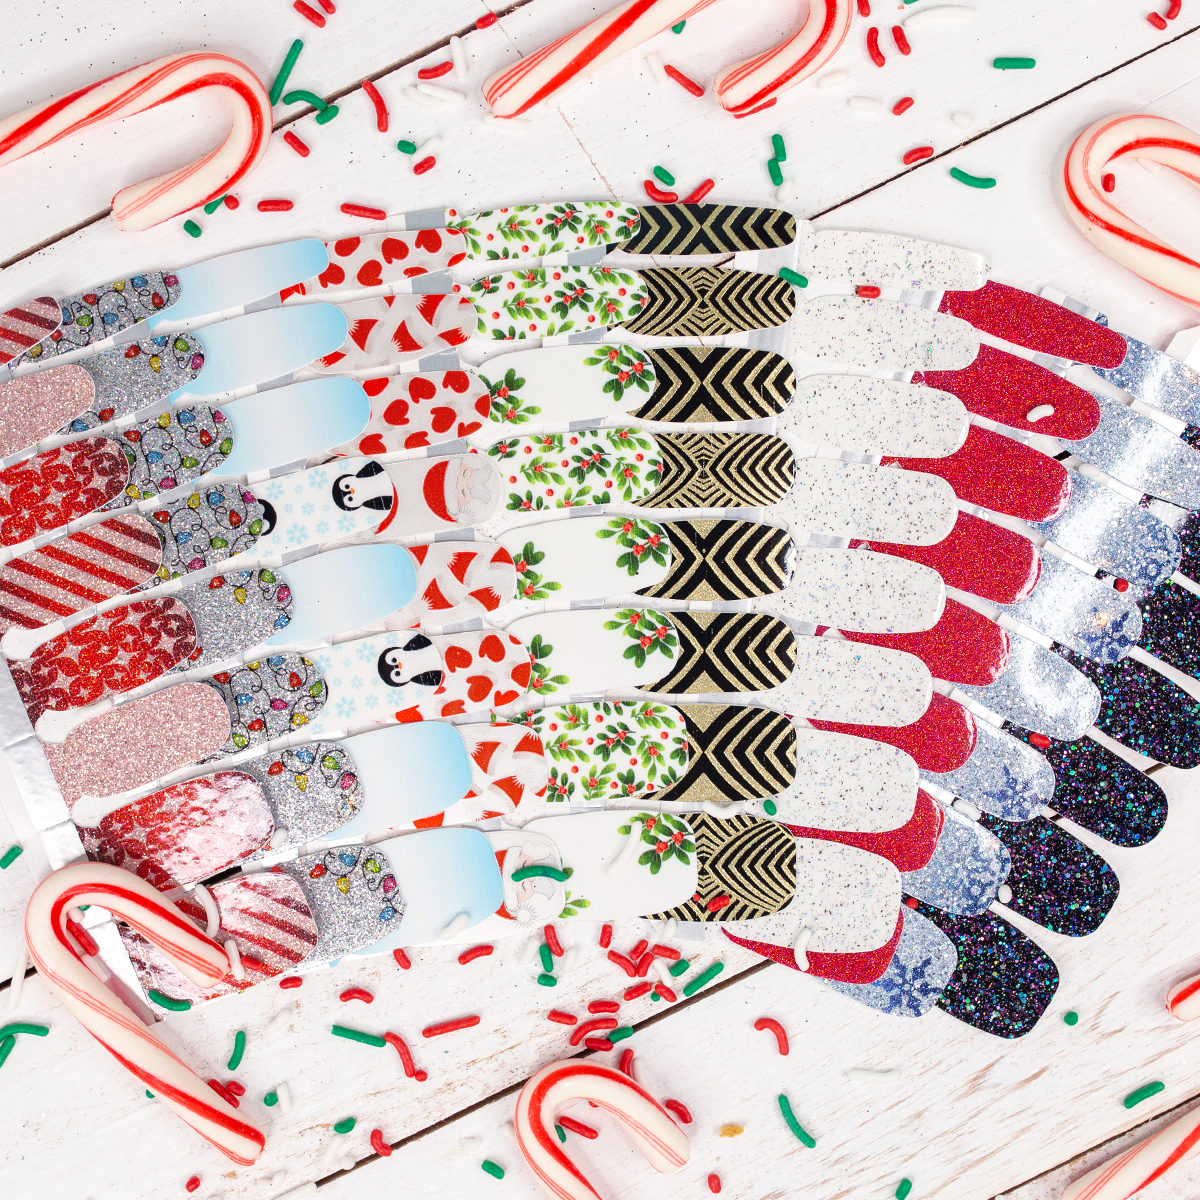 Hello, Holiday ❄️! Meet our newest collection of festive, winter-themed shades and designs. From left to right: Wrap it Up, Holiday De-light, Penguin Party, Just Be-Claus, Berry Merry, Drop the Ball, Glittersweet, Cran-tastic, Ice Ice Maybe, and Holidaze. https://t.co/J8ZxGe07XJ